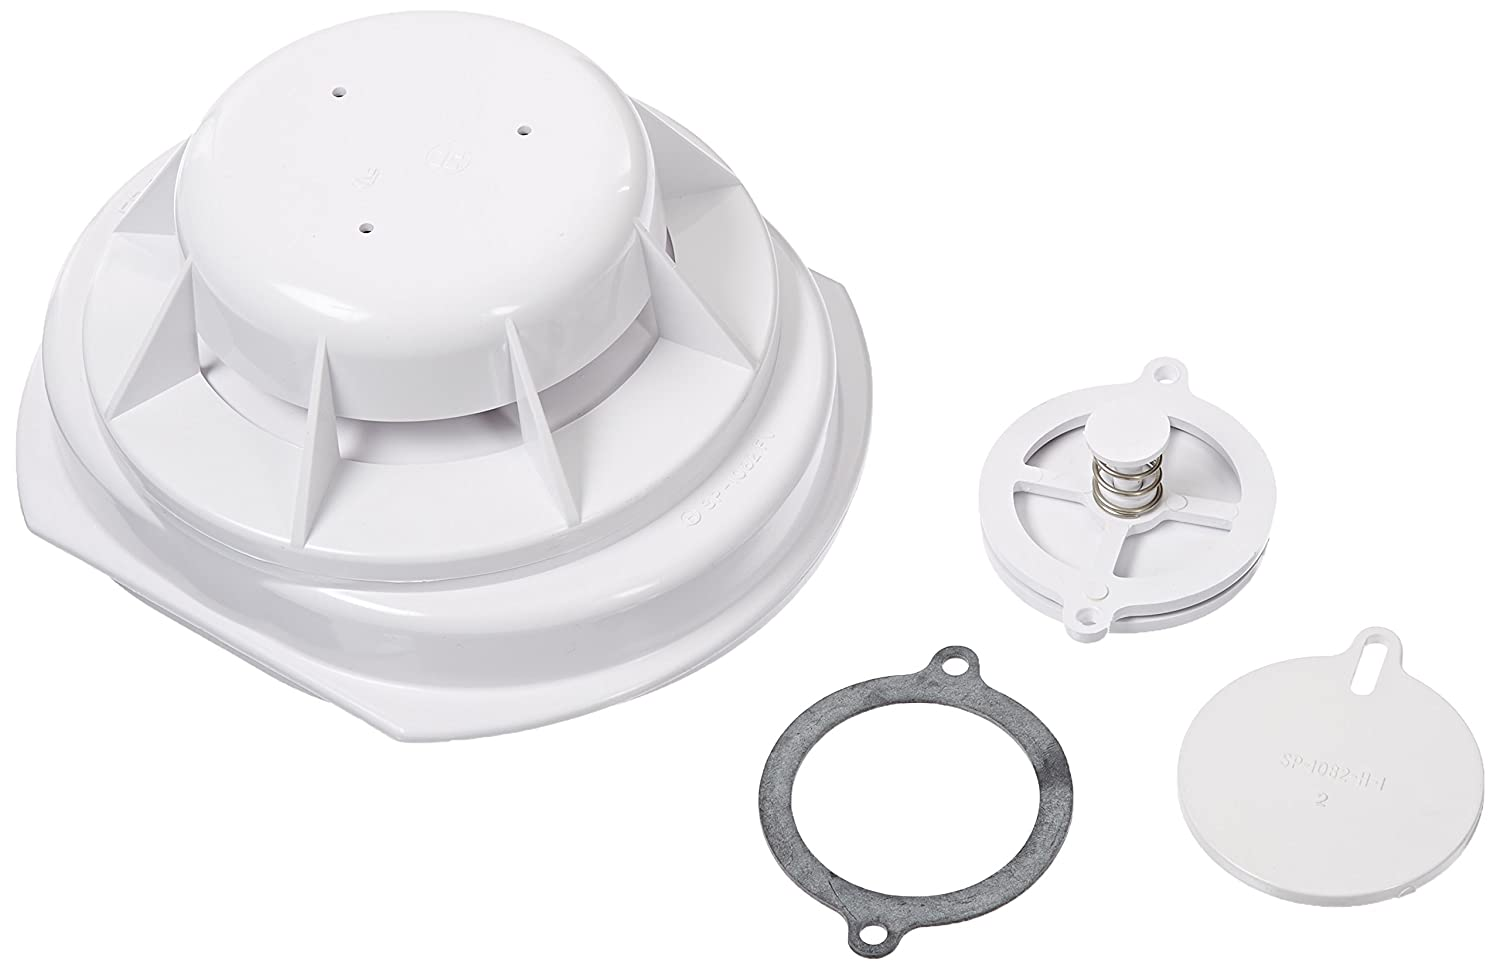 Hayward SP1080FVEKIT Float Valve and Equalizer Valve Replacement Kit for Hayward SP1080 Auto-Skim Series Skimmer